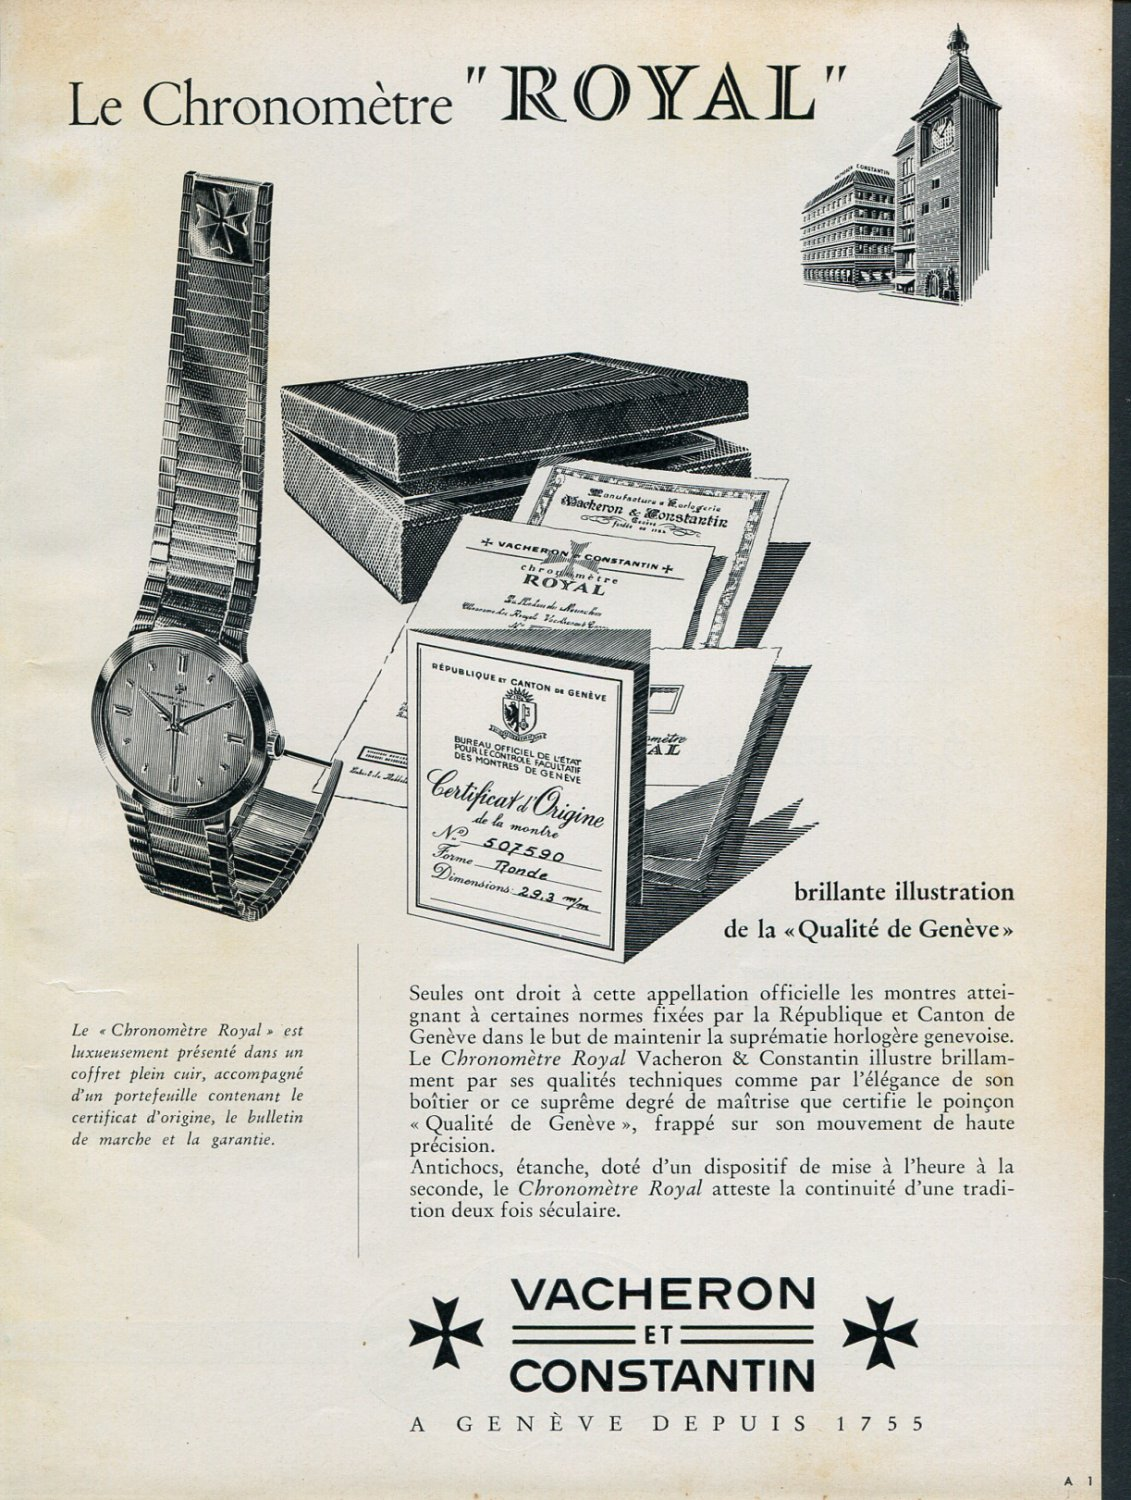 1956 Vacheron Constantin Chronometre Royal Watch Advert Publicite Suisse Montres Swiss Print Ad